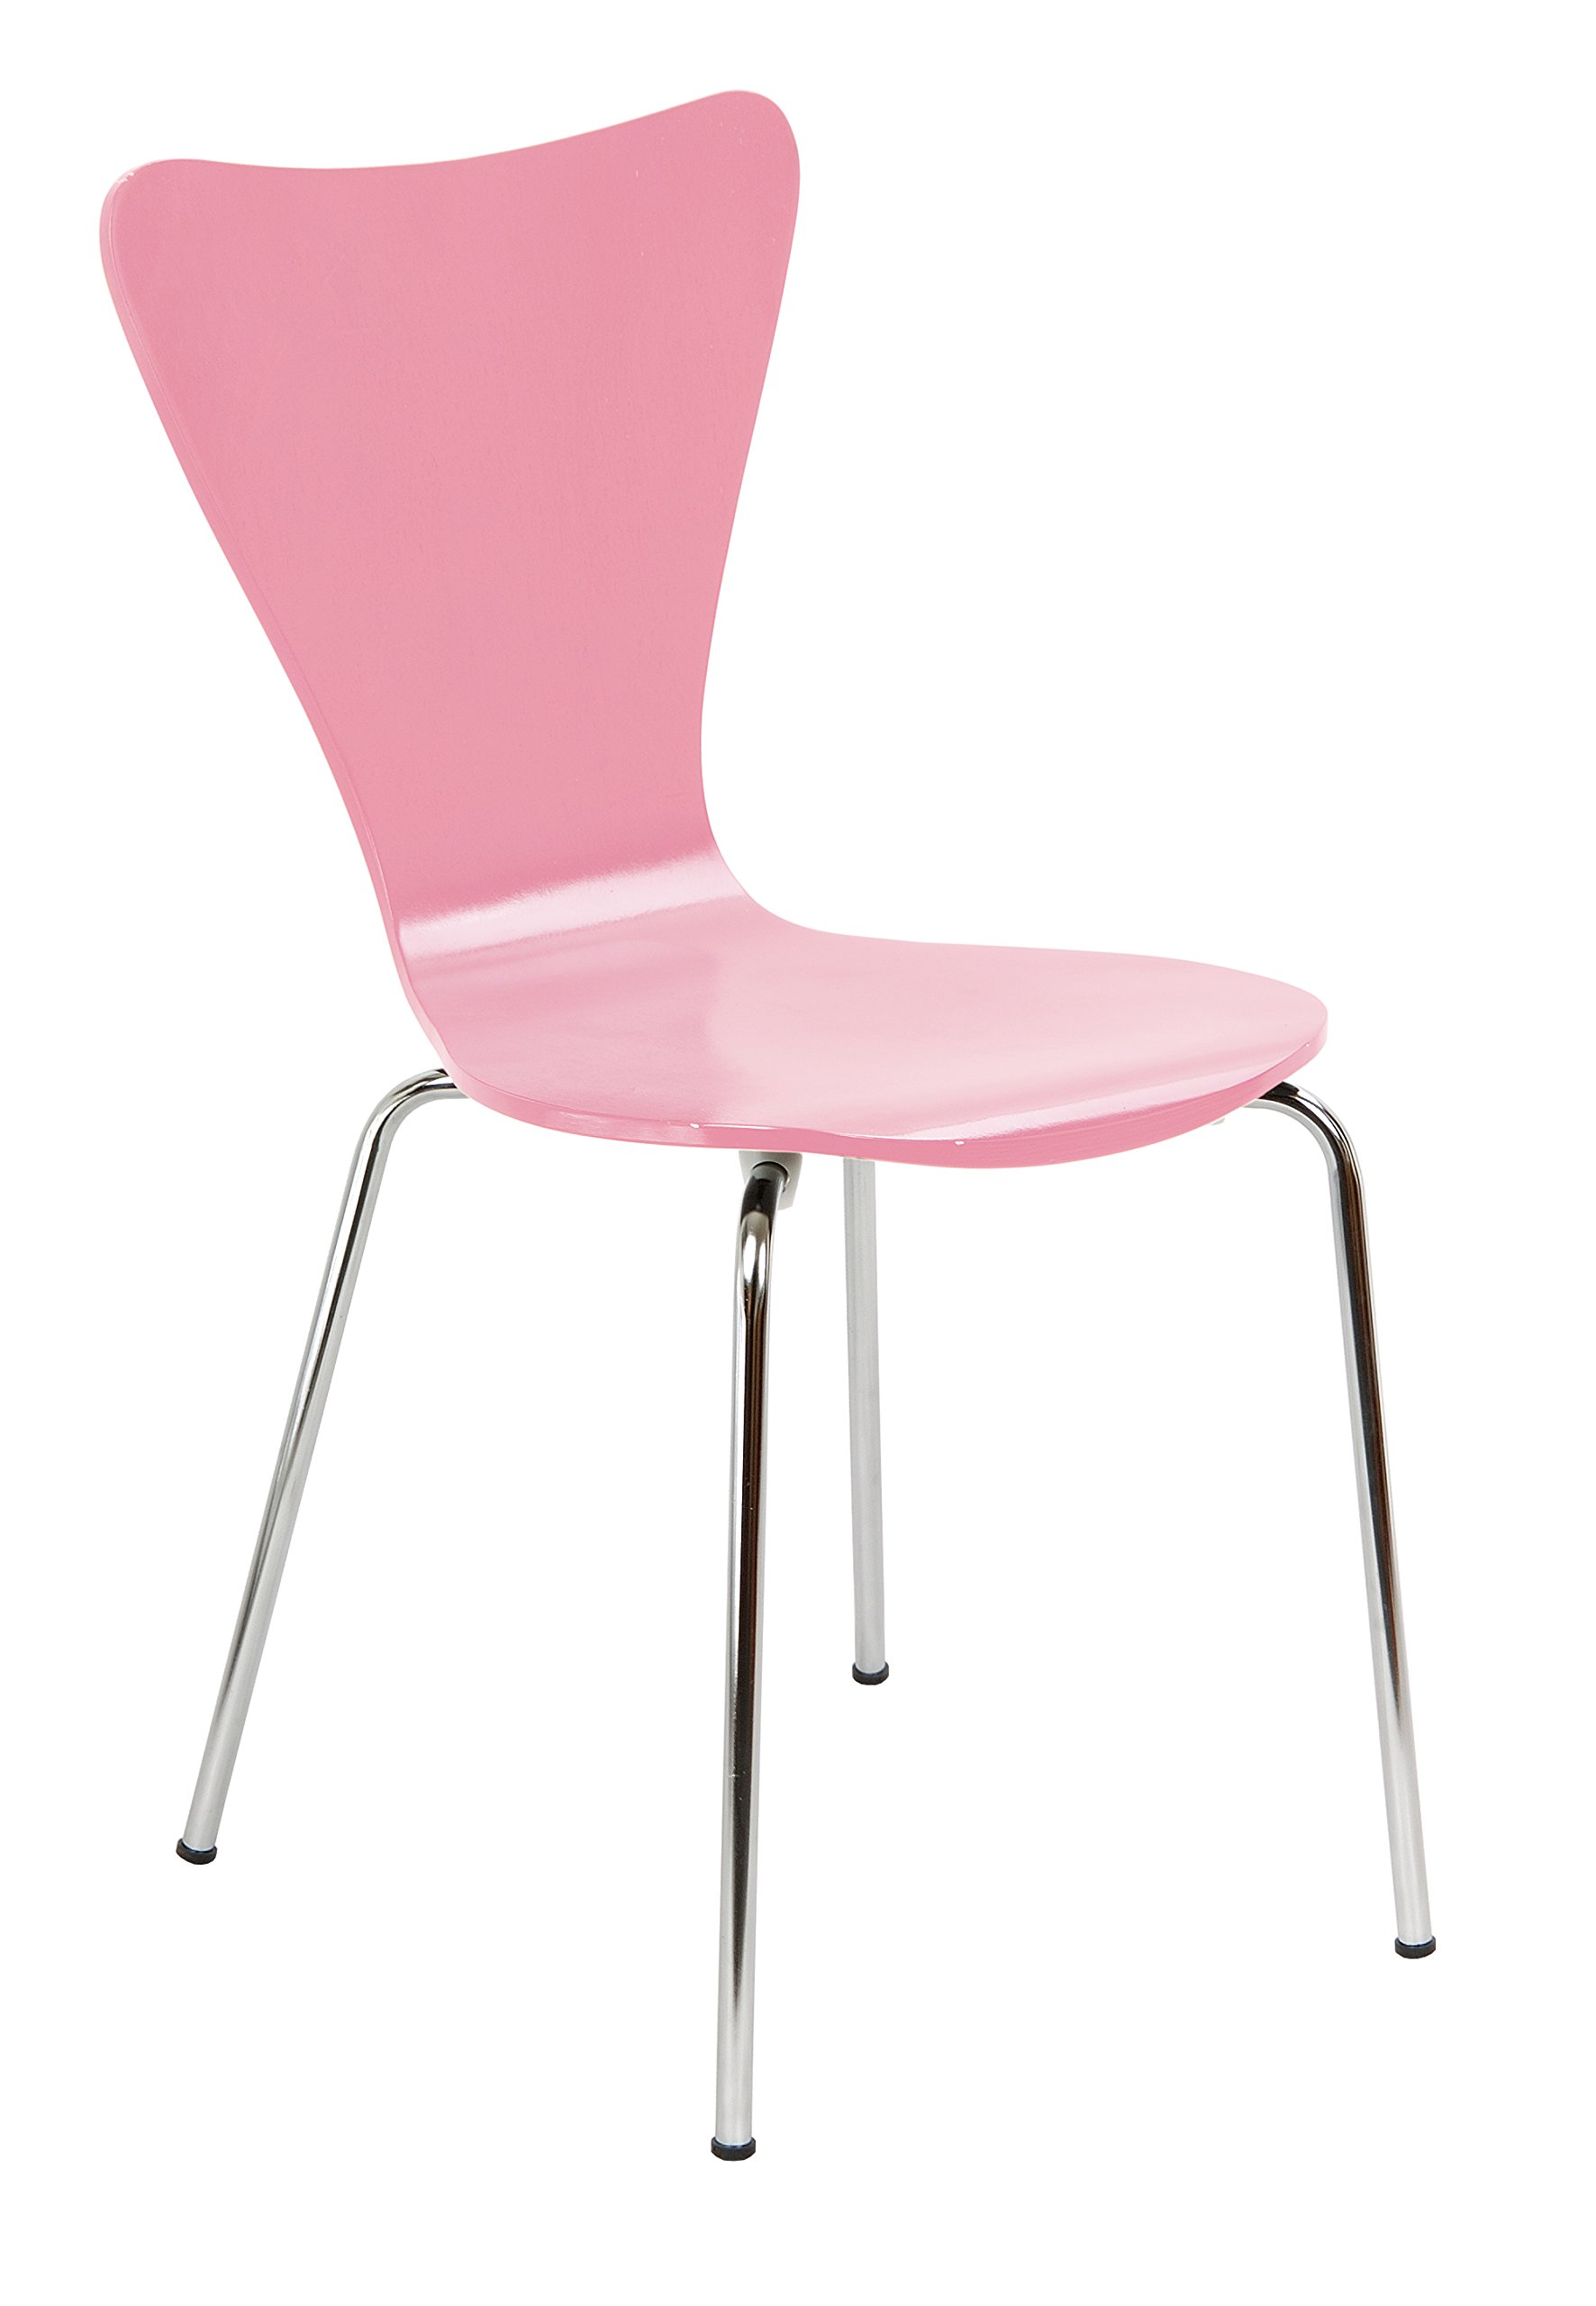 Pink Dining Chair Chair Pads Amp Cushions